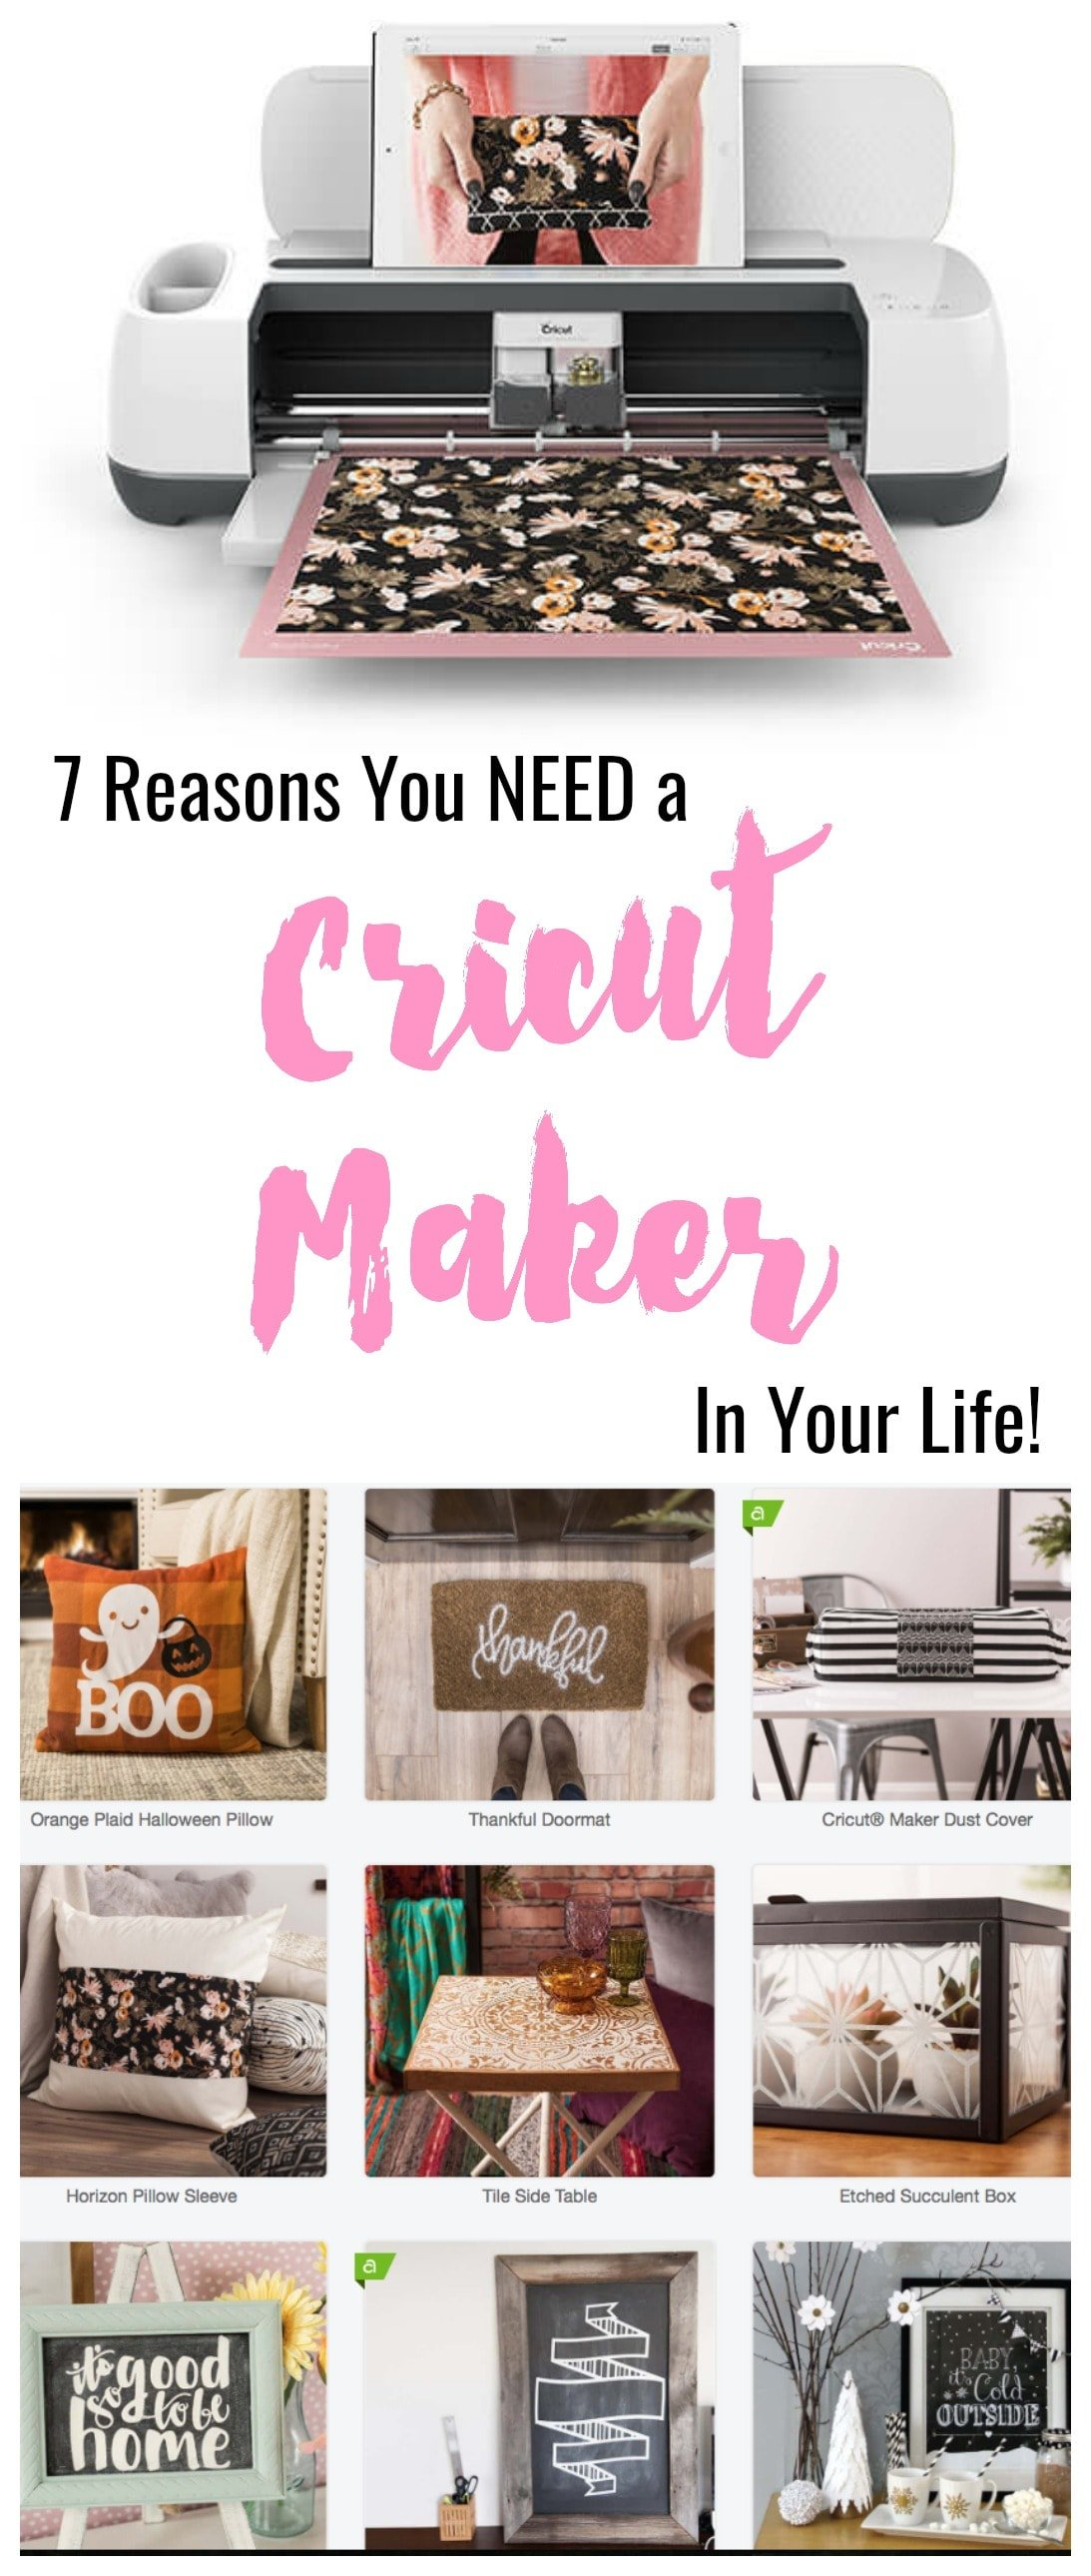 Cricut Maker Design Space: Why You NEED a Cricut Makerrh:makelifelovely.com,Design